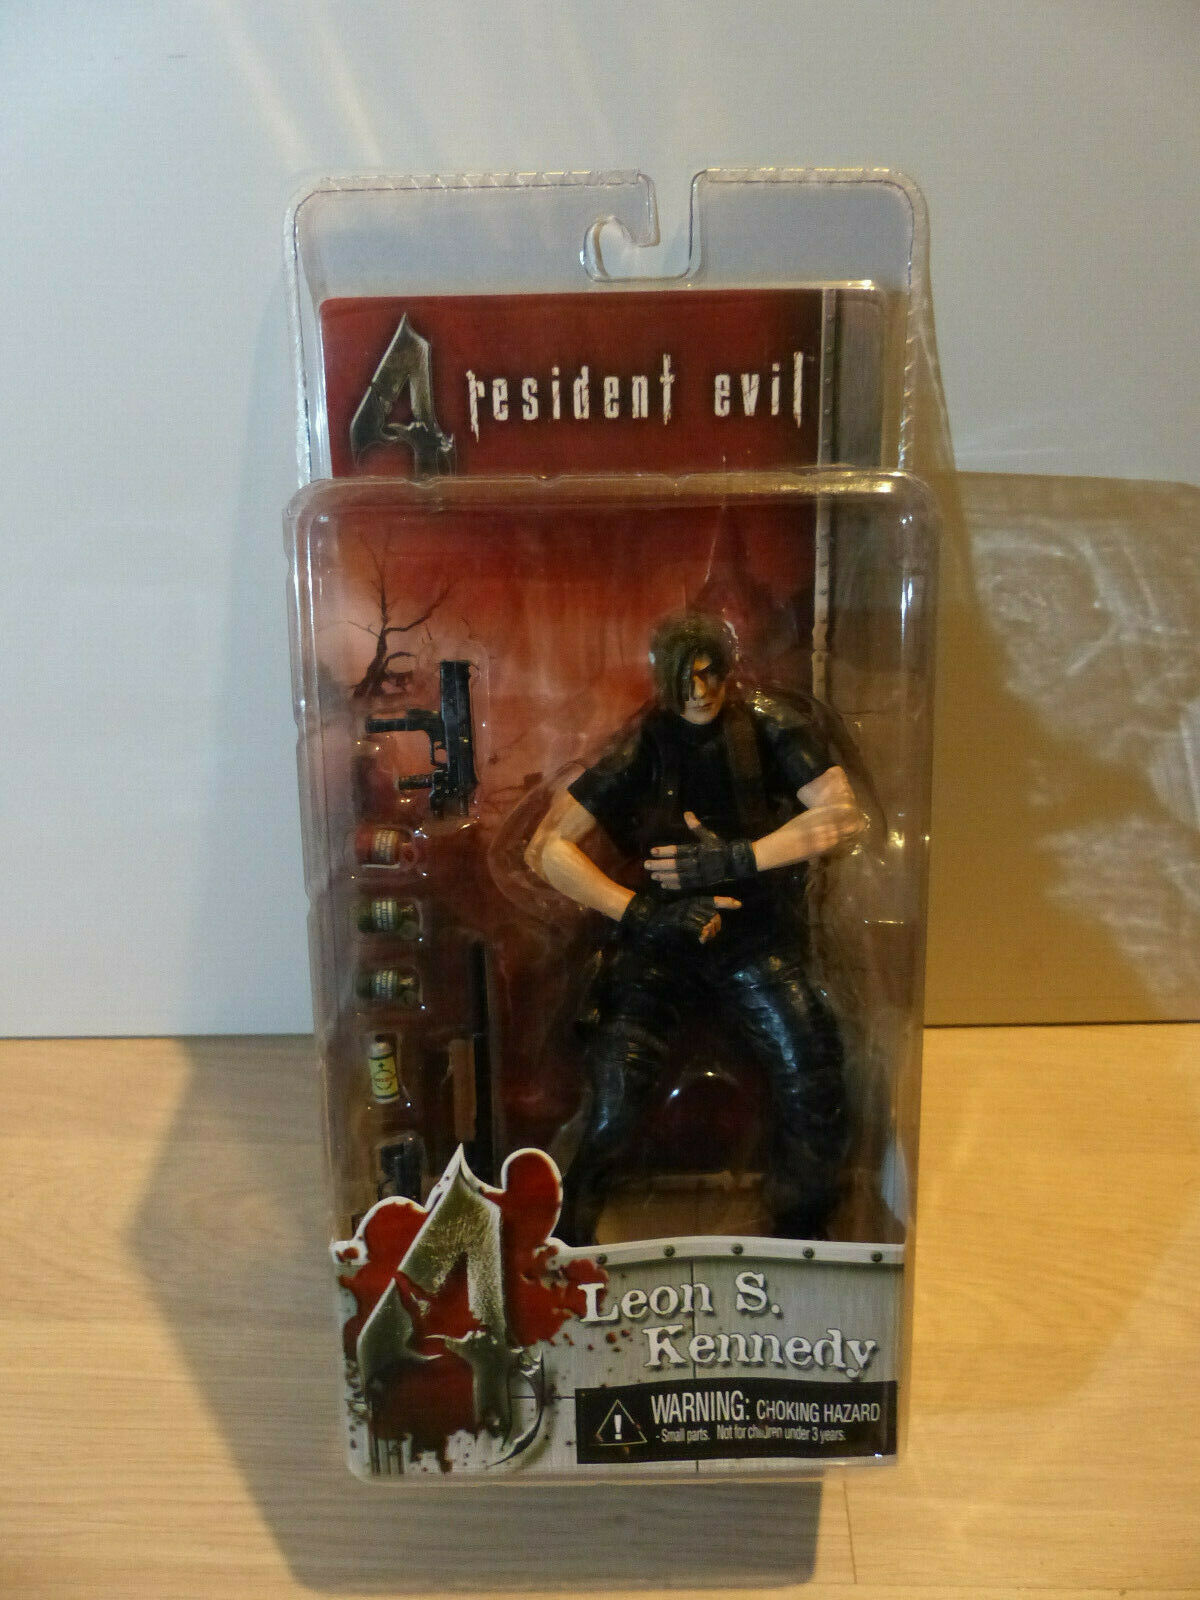 Resident Evil 4 Leon S. Kennedy (No jacket) Neca With Opened Blister RARE